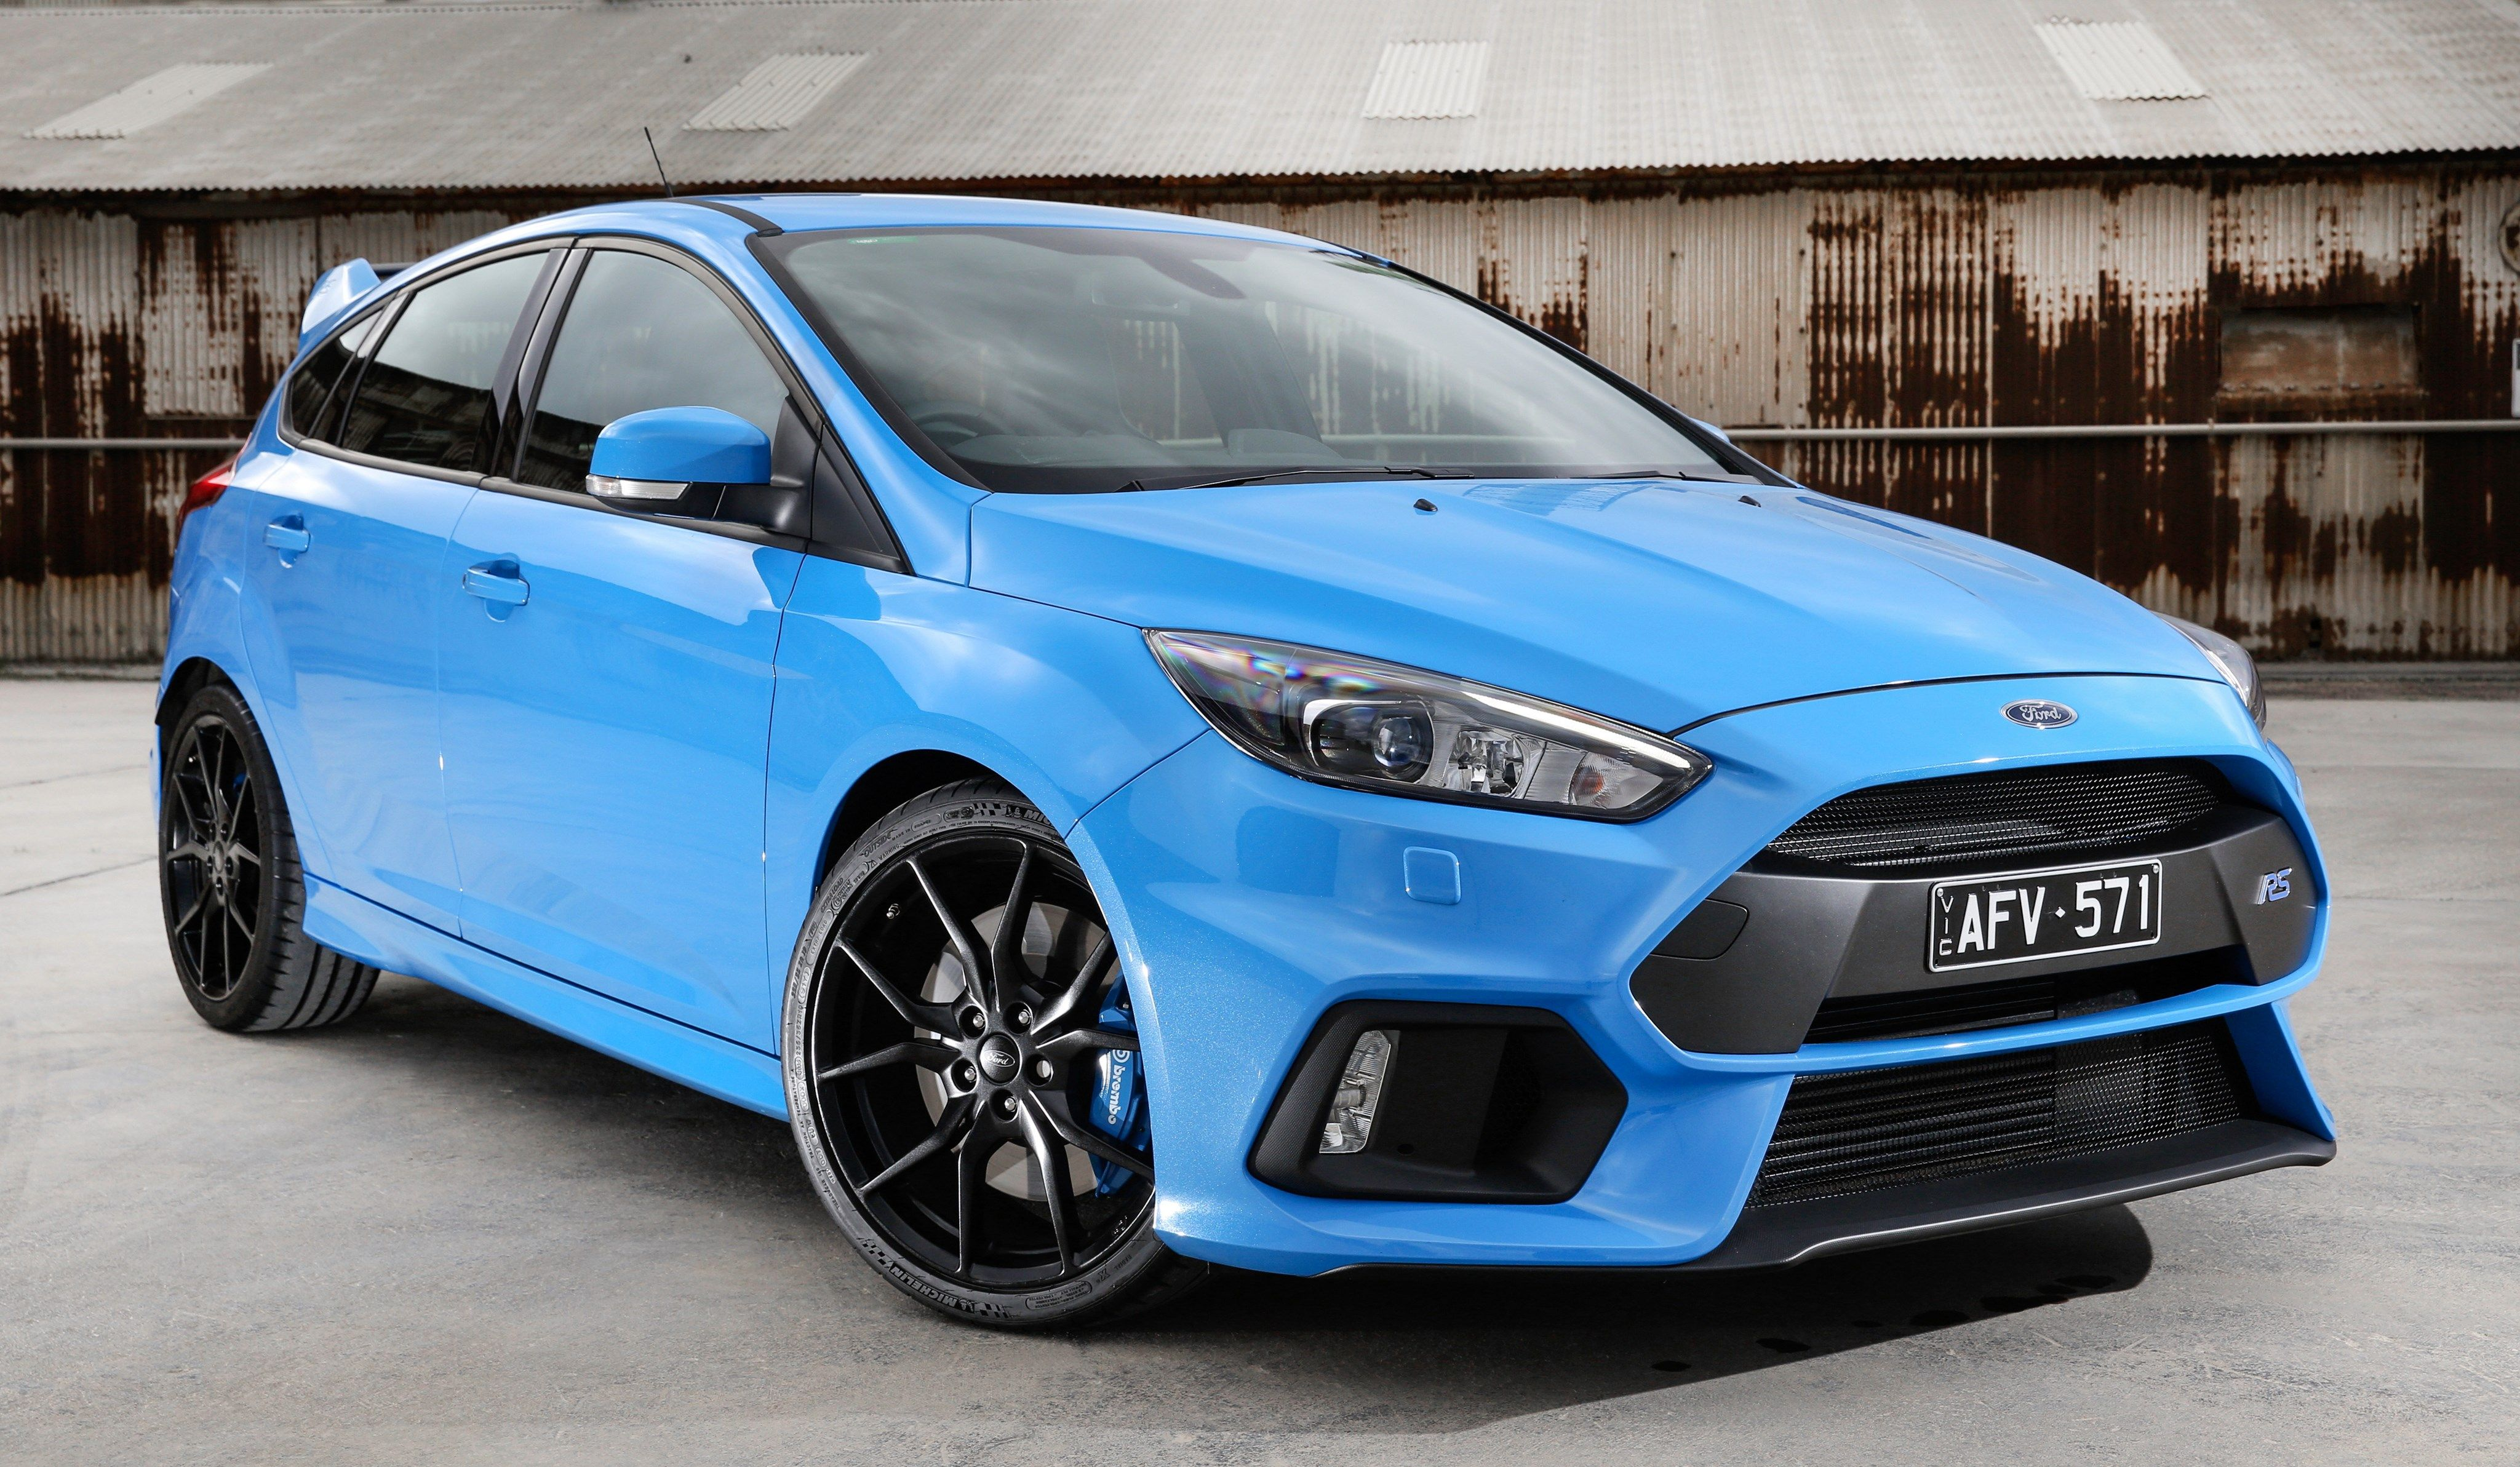 Ford Focus Rs Wallpaper For Mac Stafford Edwards 4096x2385